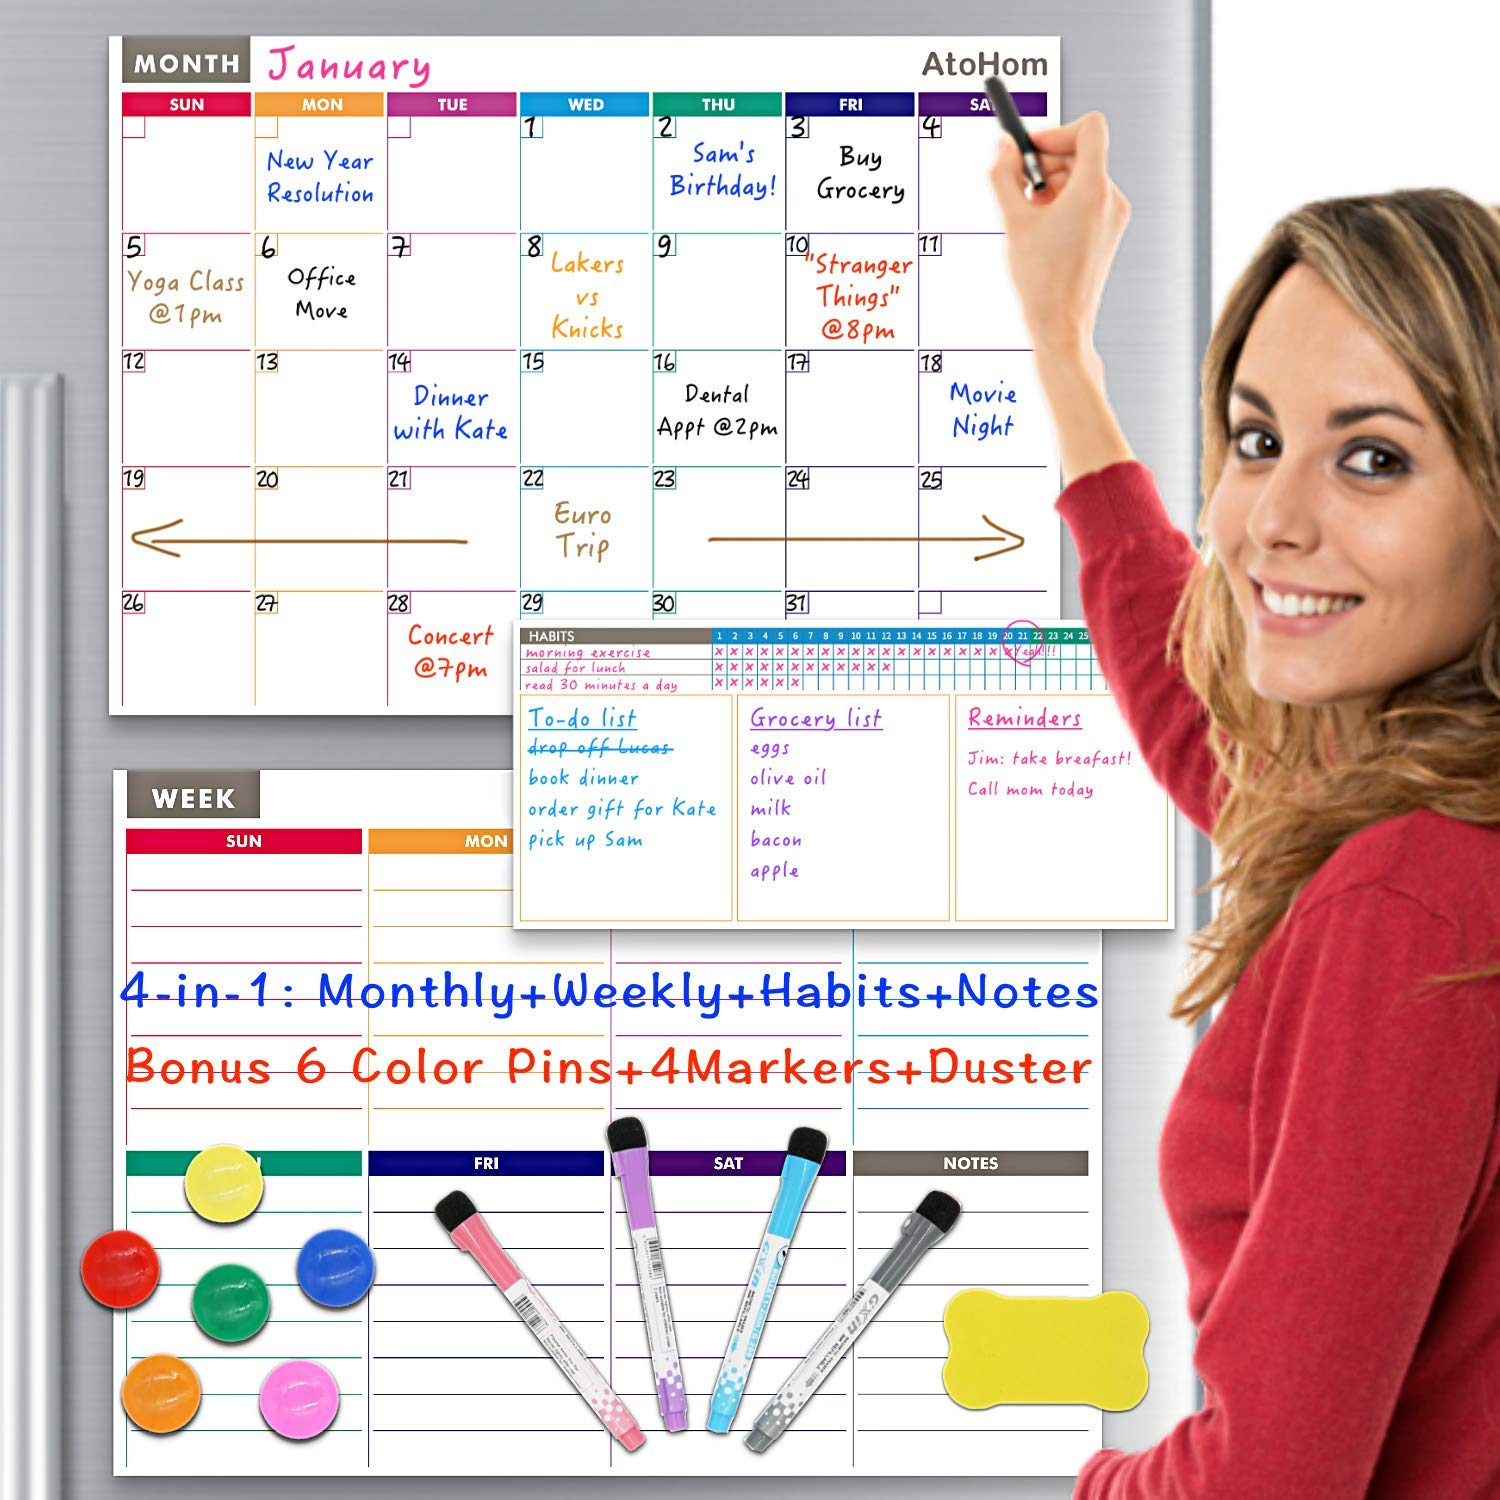 Calendar Whiteboard Dry Erase Magnetic for Refrigerator 4 in 1: Monthly, Weekly Planner, Habit Tracker and Notepad for Wall and Fridge Family Calendar. Bonus 6 Color Pins 4 Markers and Eraser Included